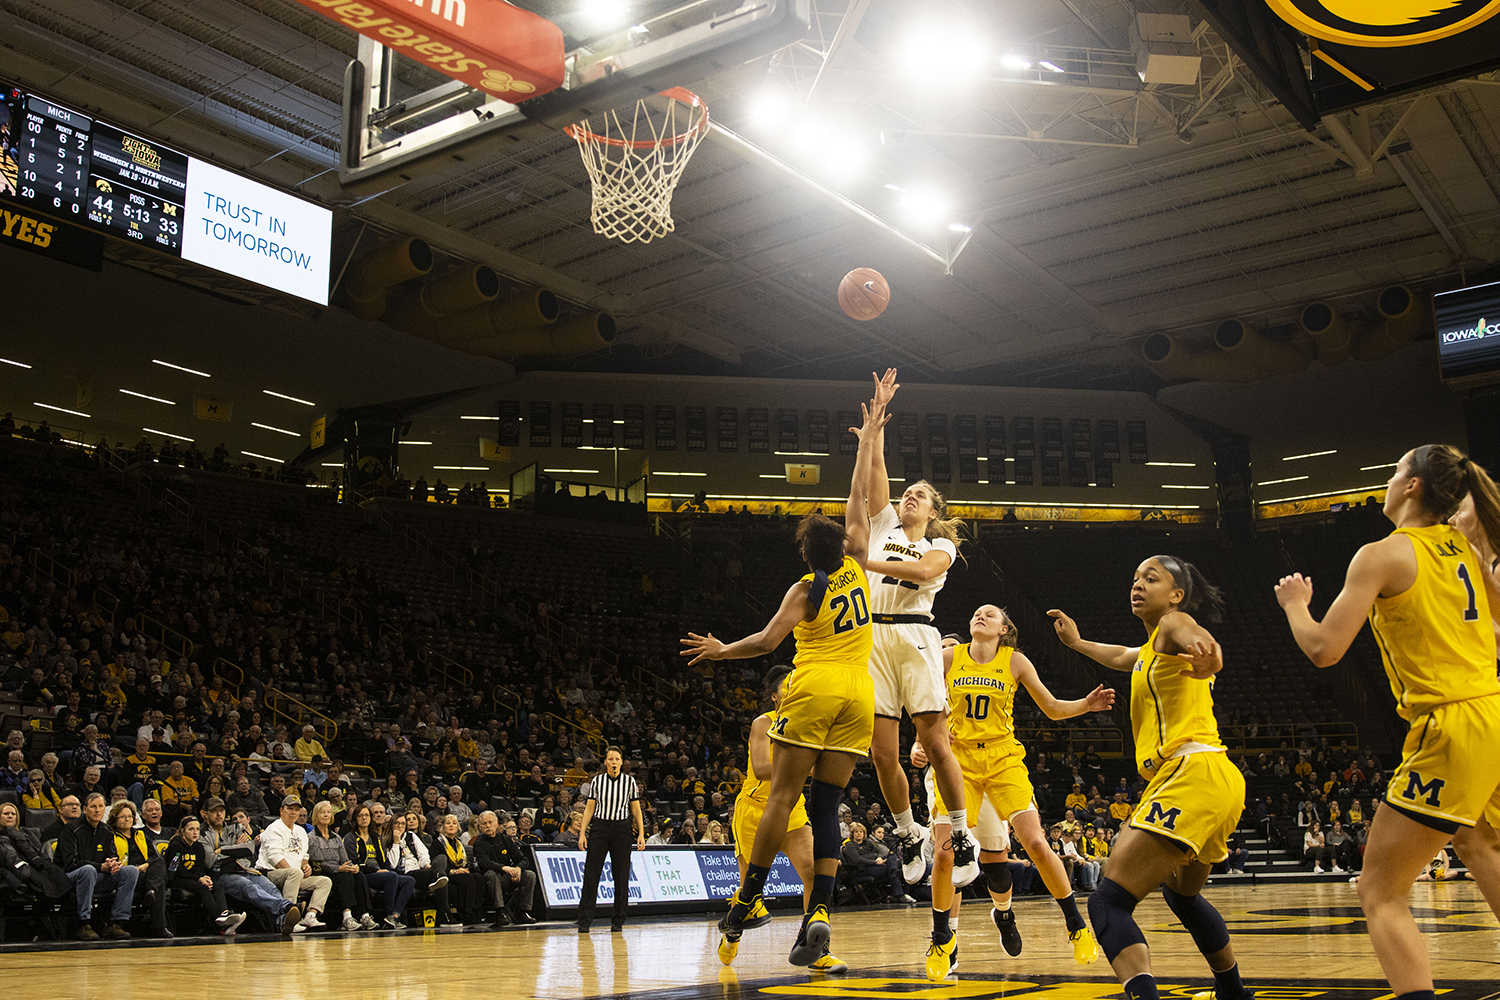 Iowa+guard+Kathleen+Doyle+attempts+a+shot+during+the+Iowa%2FMichigan+women%27s+basketball+game+at+Carver-Hawkeye+Arena+on+Thursday%2C+January+17%2C+2019.+The+Hawkeyes+defeated+the+Wolverines%2C+75-61.+